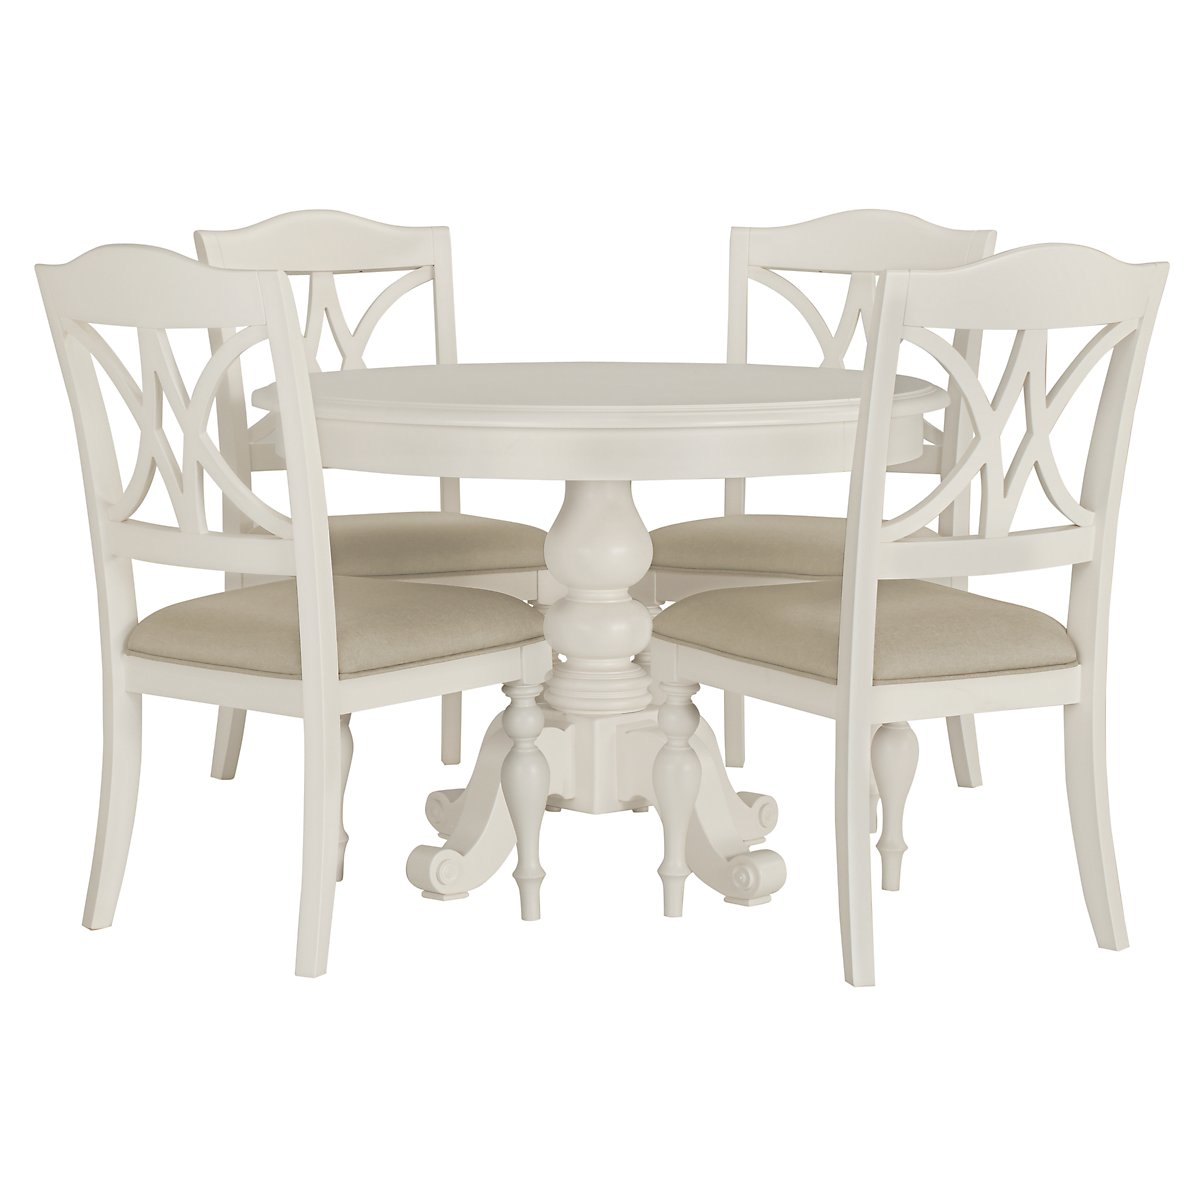 Dining Table Sets Black And White Dining Table 4 Chairs: City Furniture: Quinn White Round Table & 4 Wood Chairs